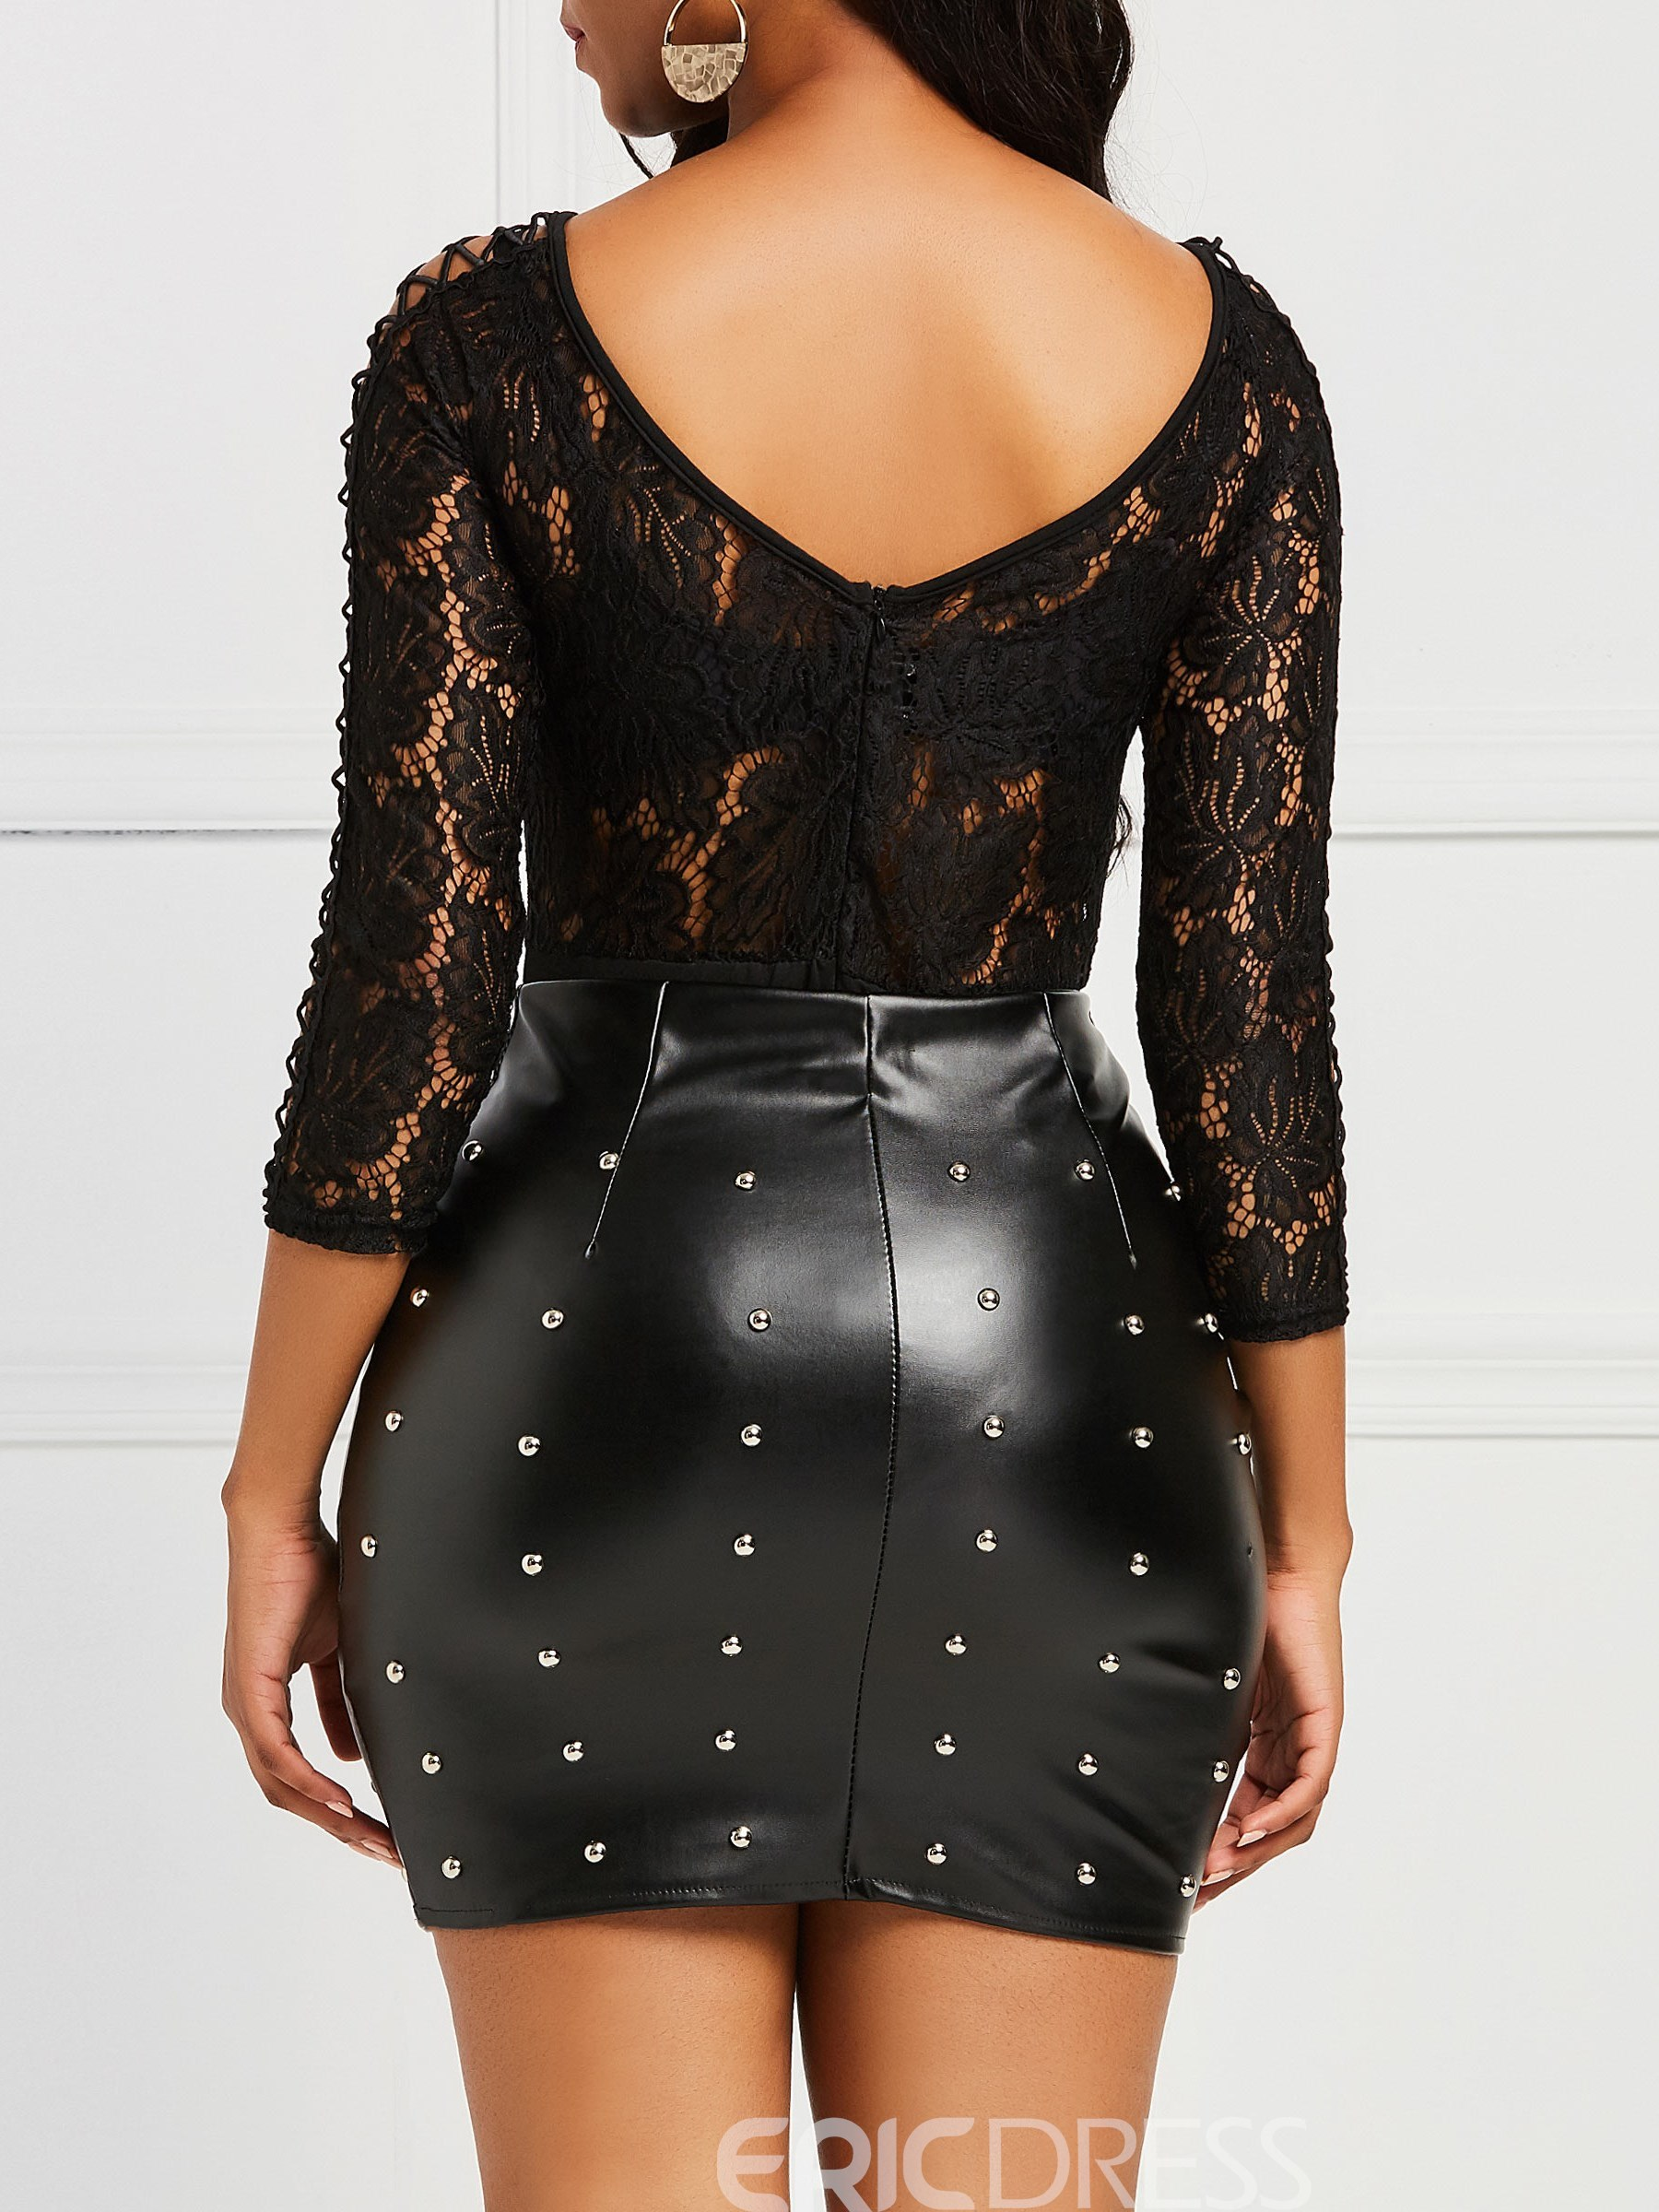 Ericdress Lace Patchwork See-through Women's Rompers